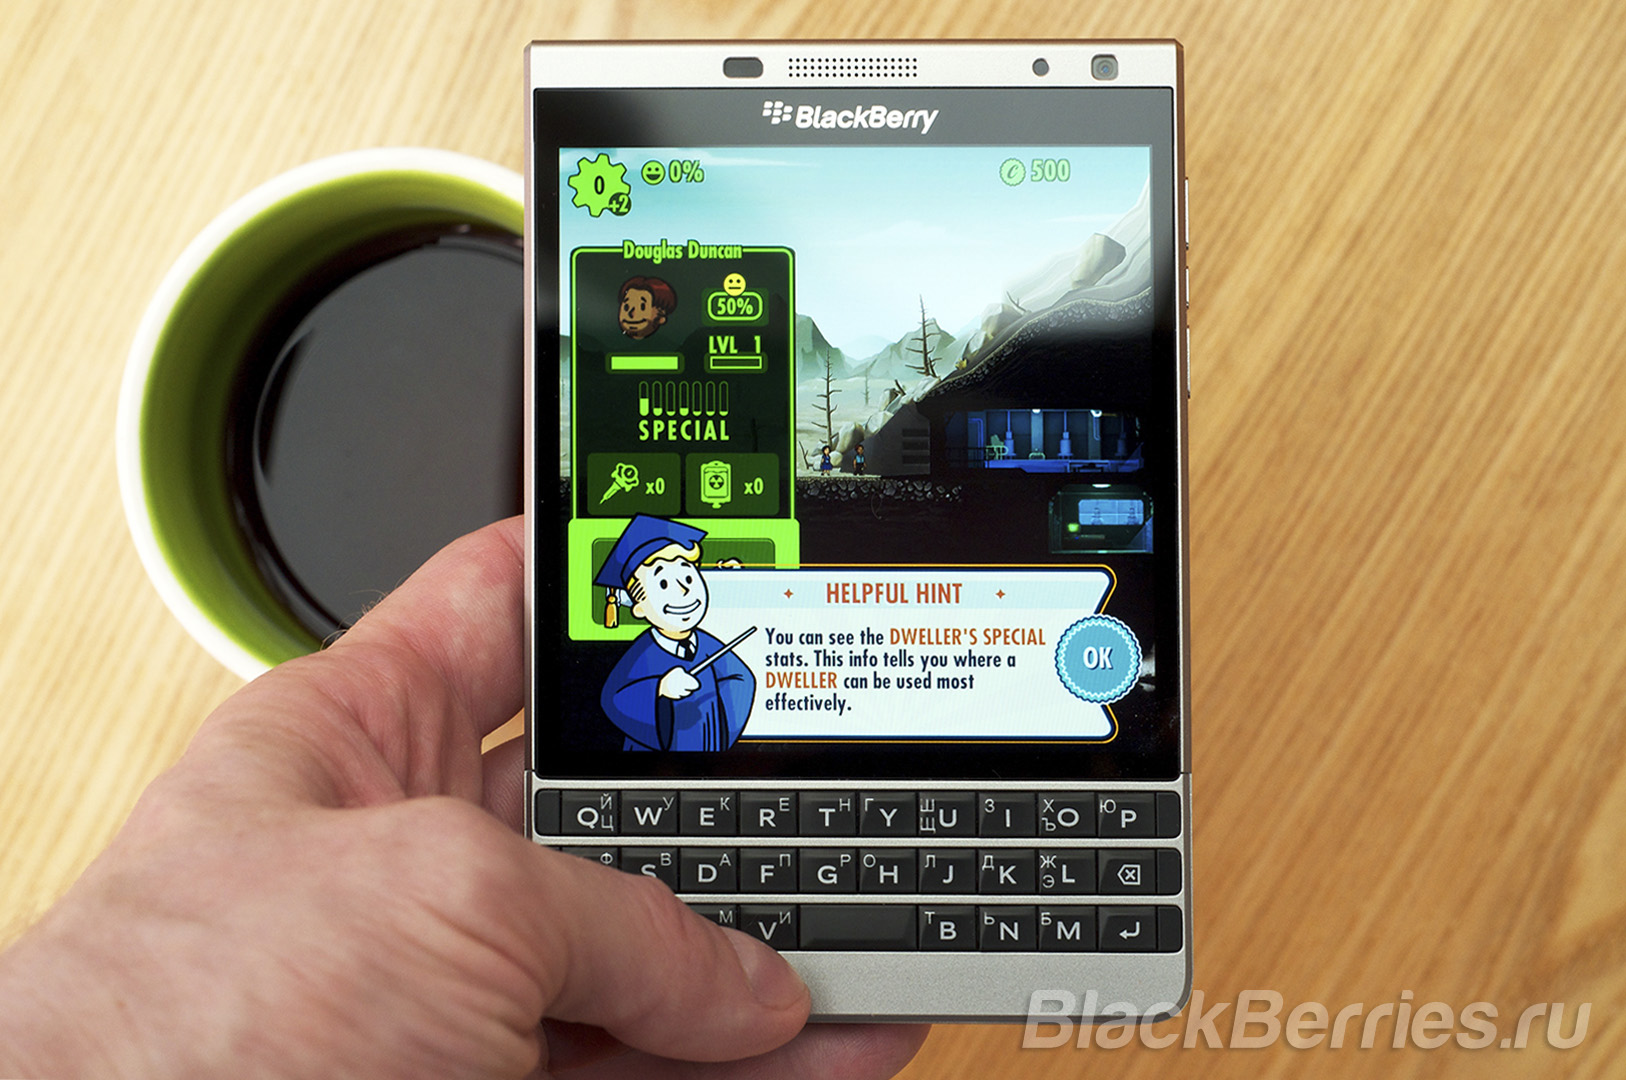 BlackBerry-Passport-Fallout-Shelter-1